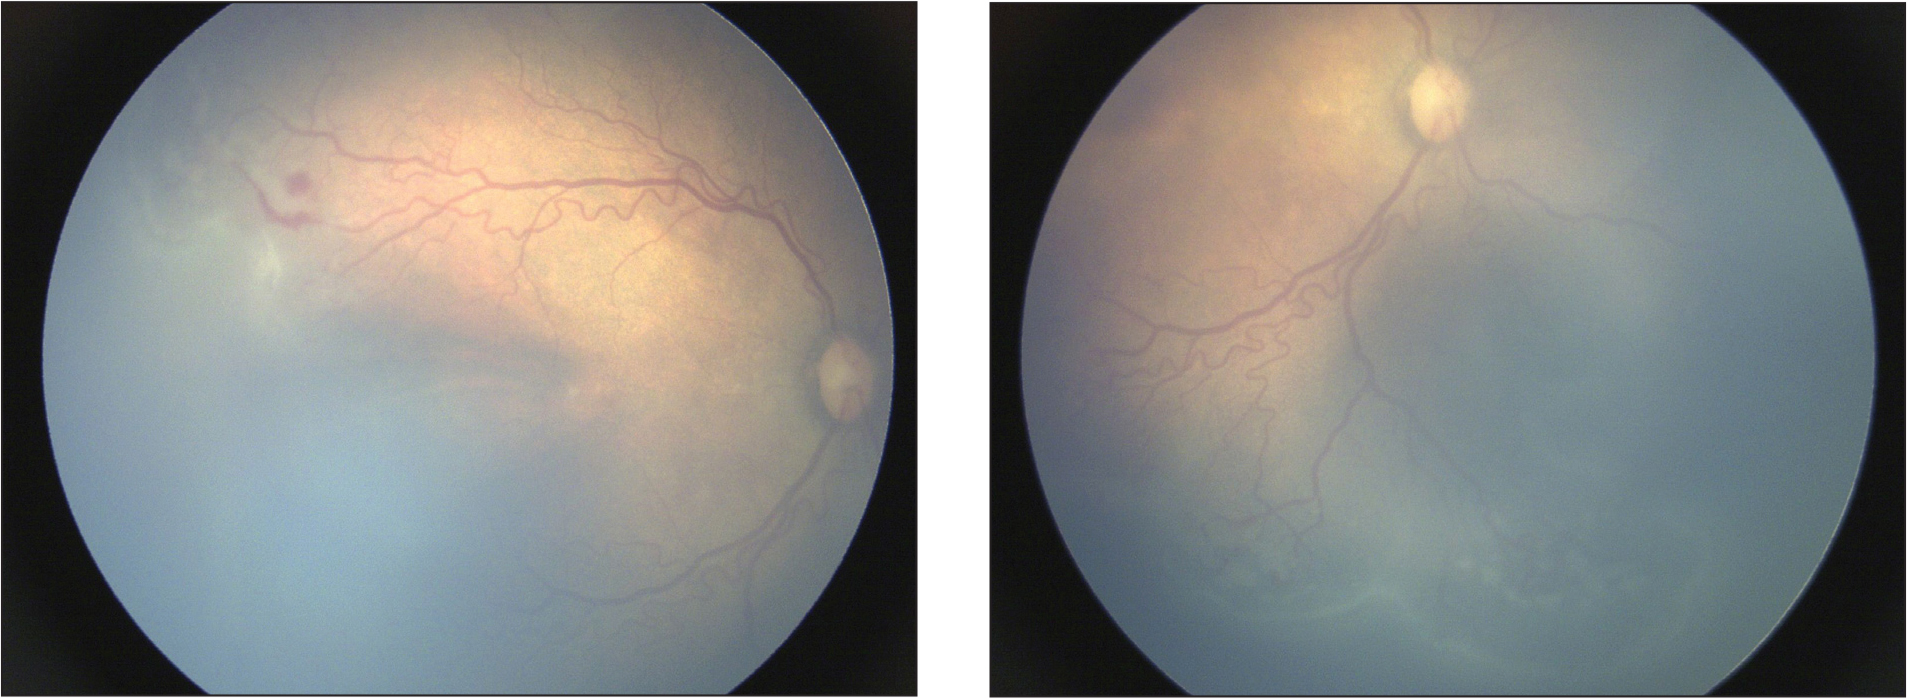 An example of a patient who was treated with anti-vascular endothelial growth factor for aggressive posterior retinopathy of prematurity at post-menstrual age of 34 weeks. The patient's gestational age was 29 weeks and birth weight was 1,250 g. The image on the left is a temporal view and the image on the right is the inferior view. Both images are from the same patient.